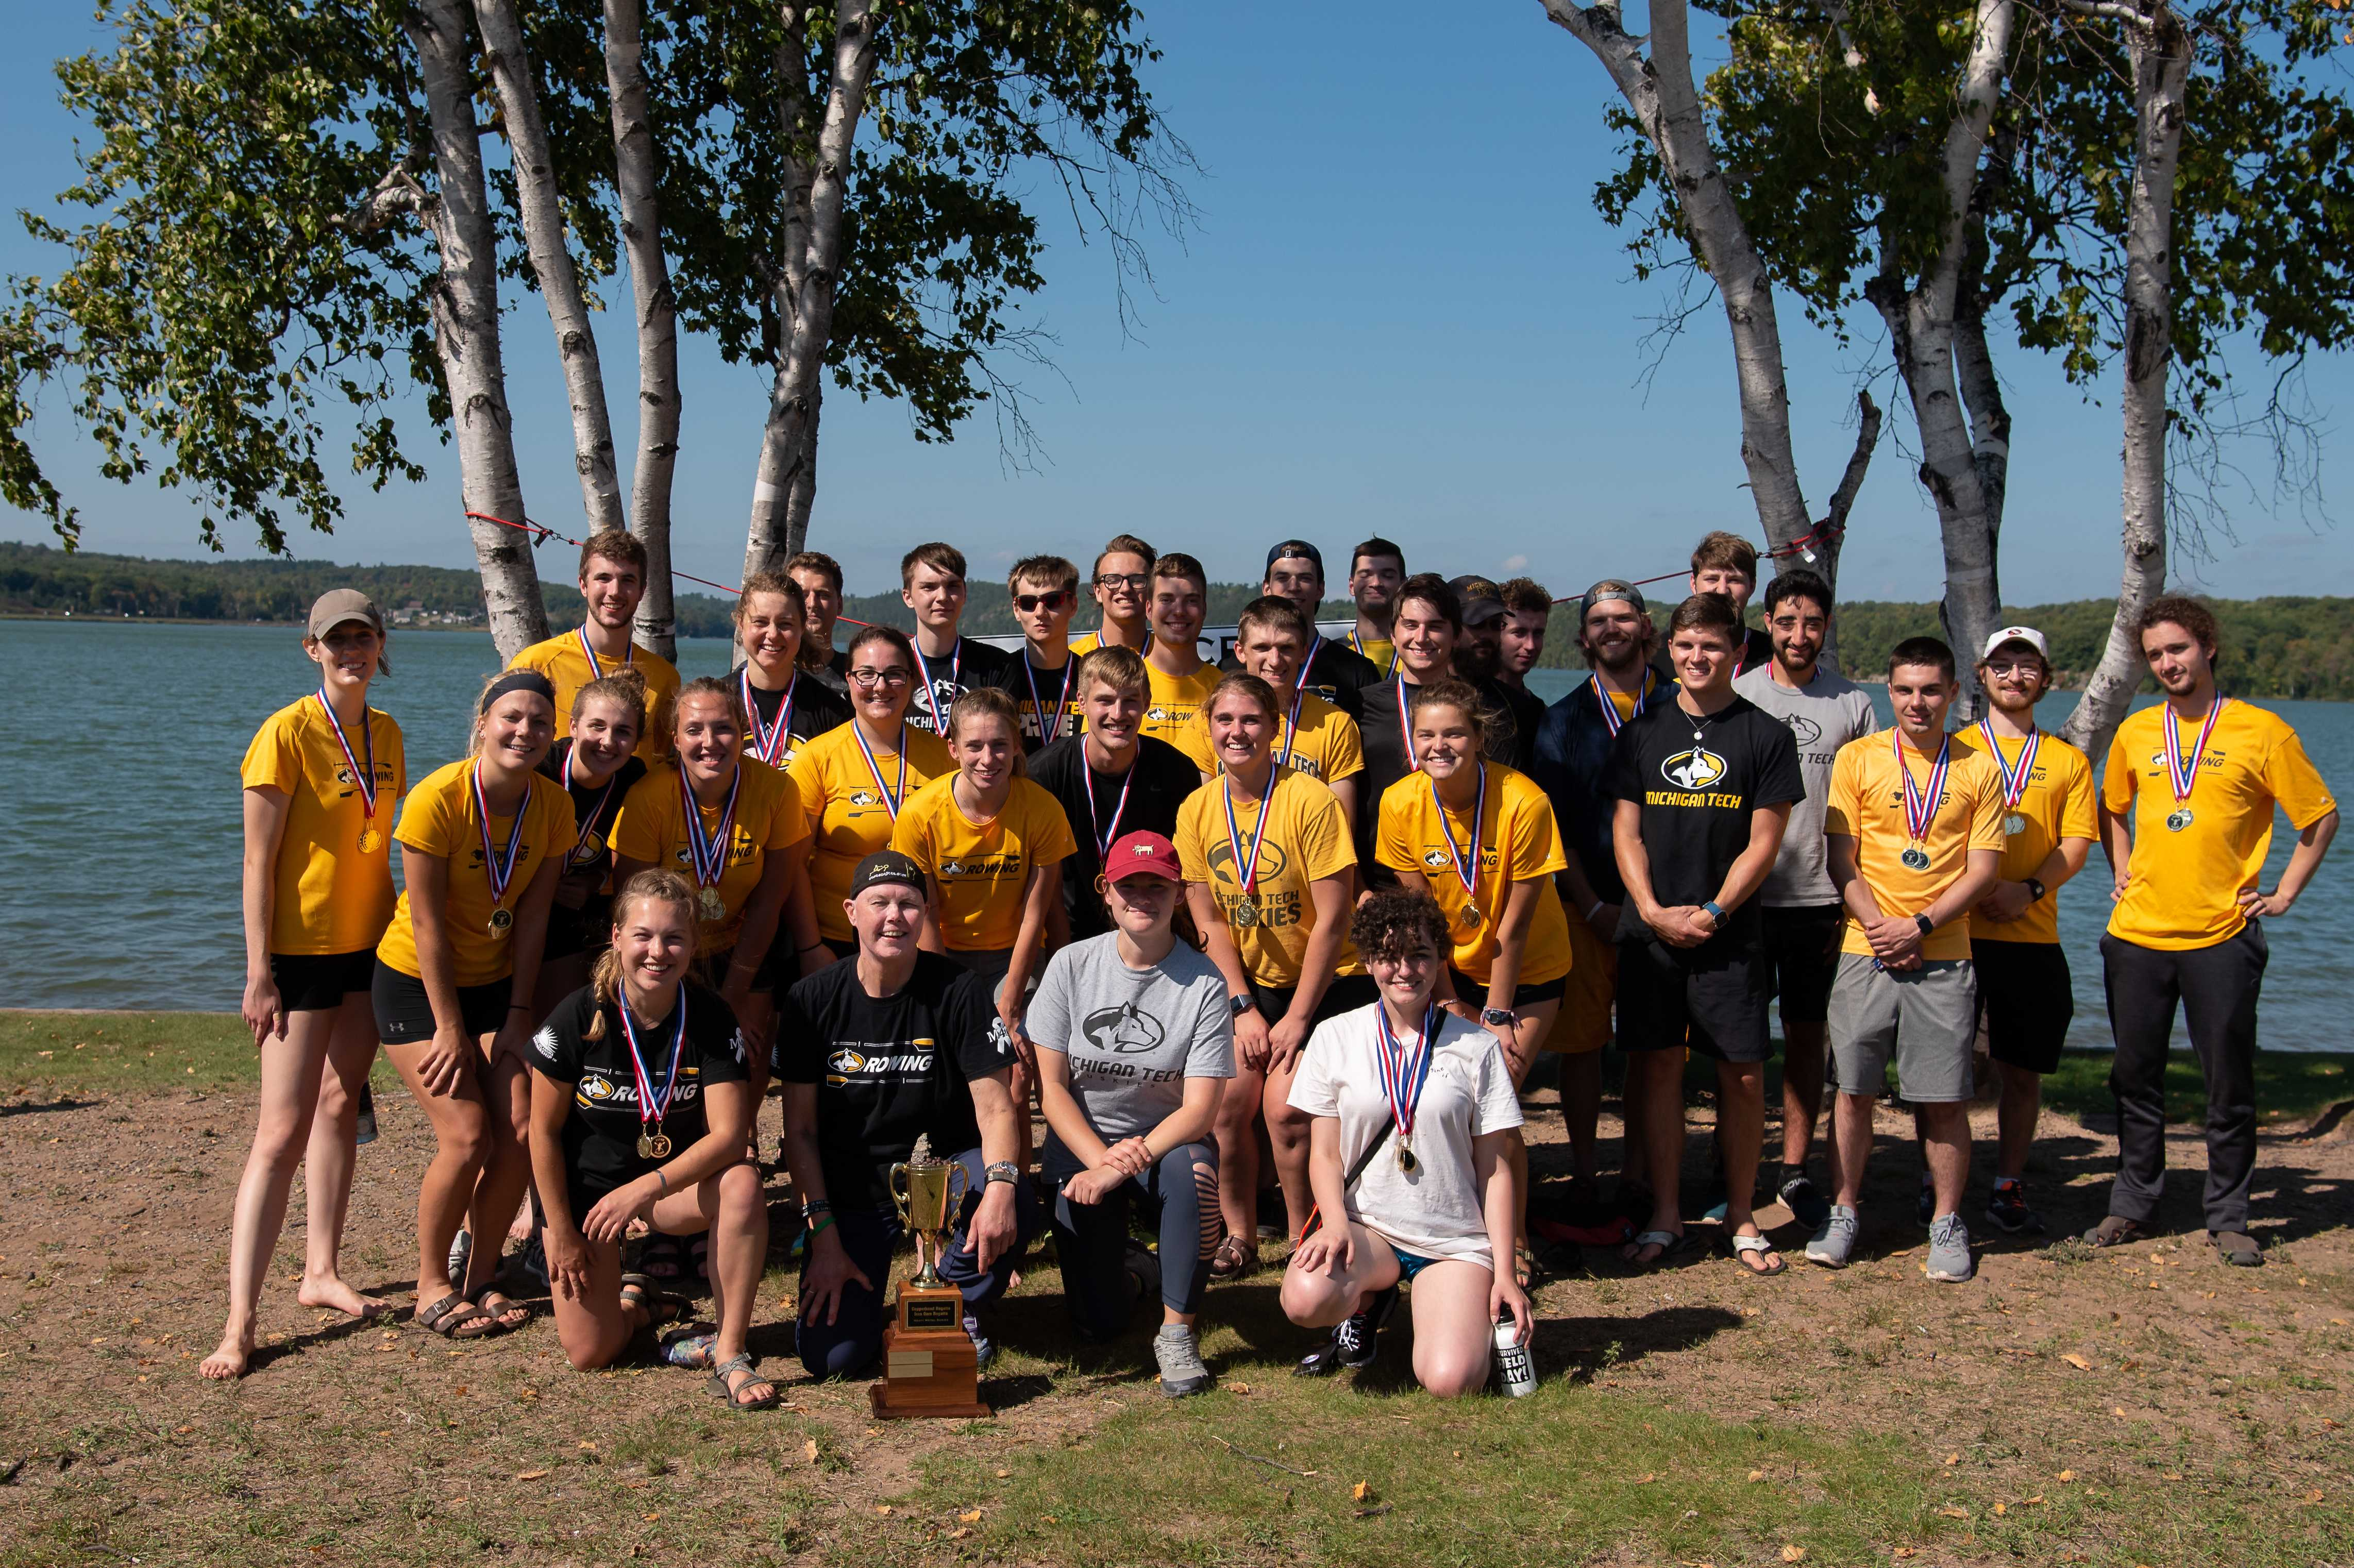 The Michigan Tech Rowing Club and all of the participants at the Iron Oars Regatta in Marquette with their trophy.